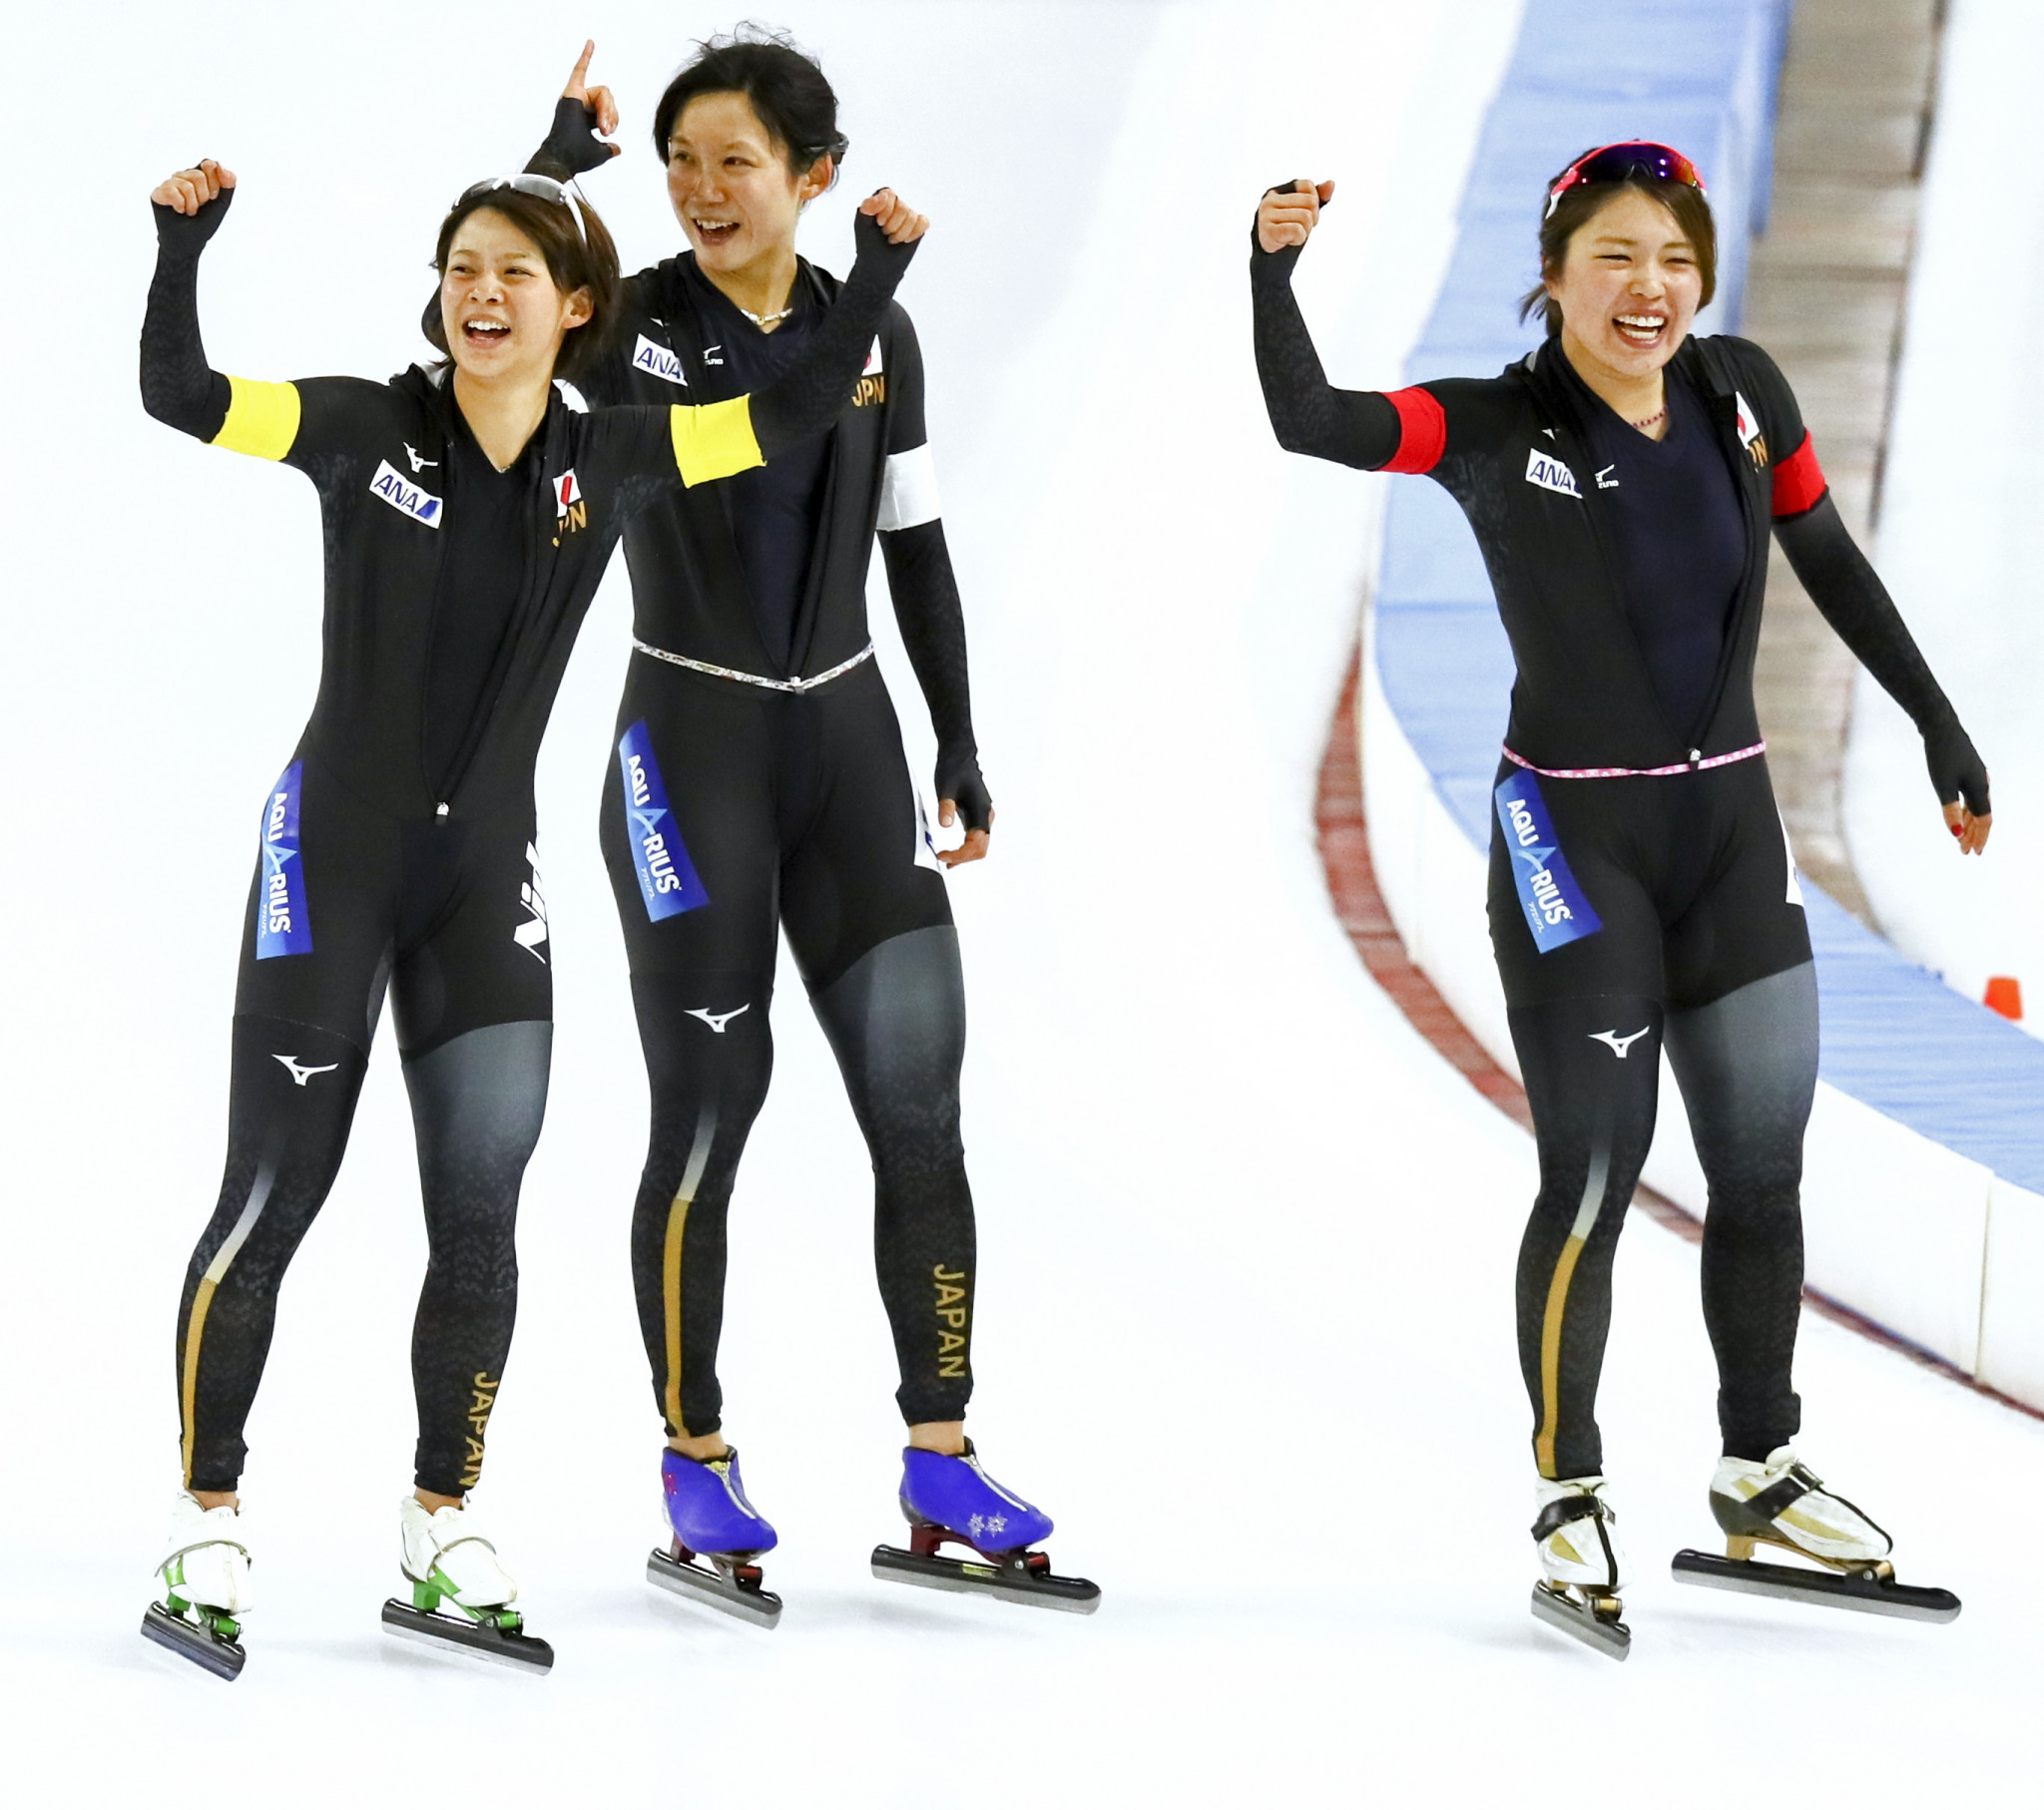 Japan aiming to continue dominant form at ISU Speed Skating World Cup in Stavanger